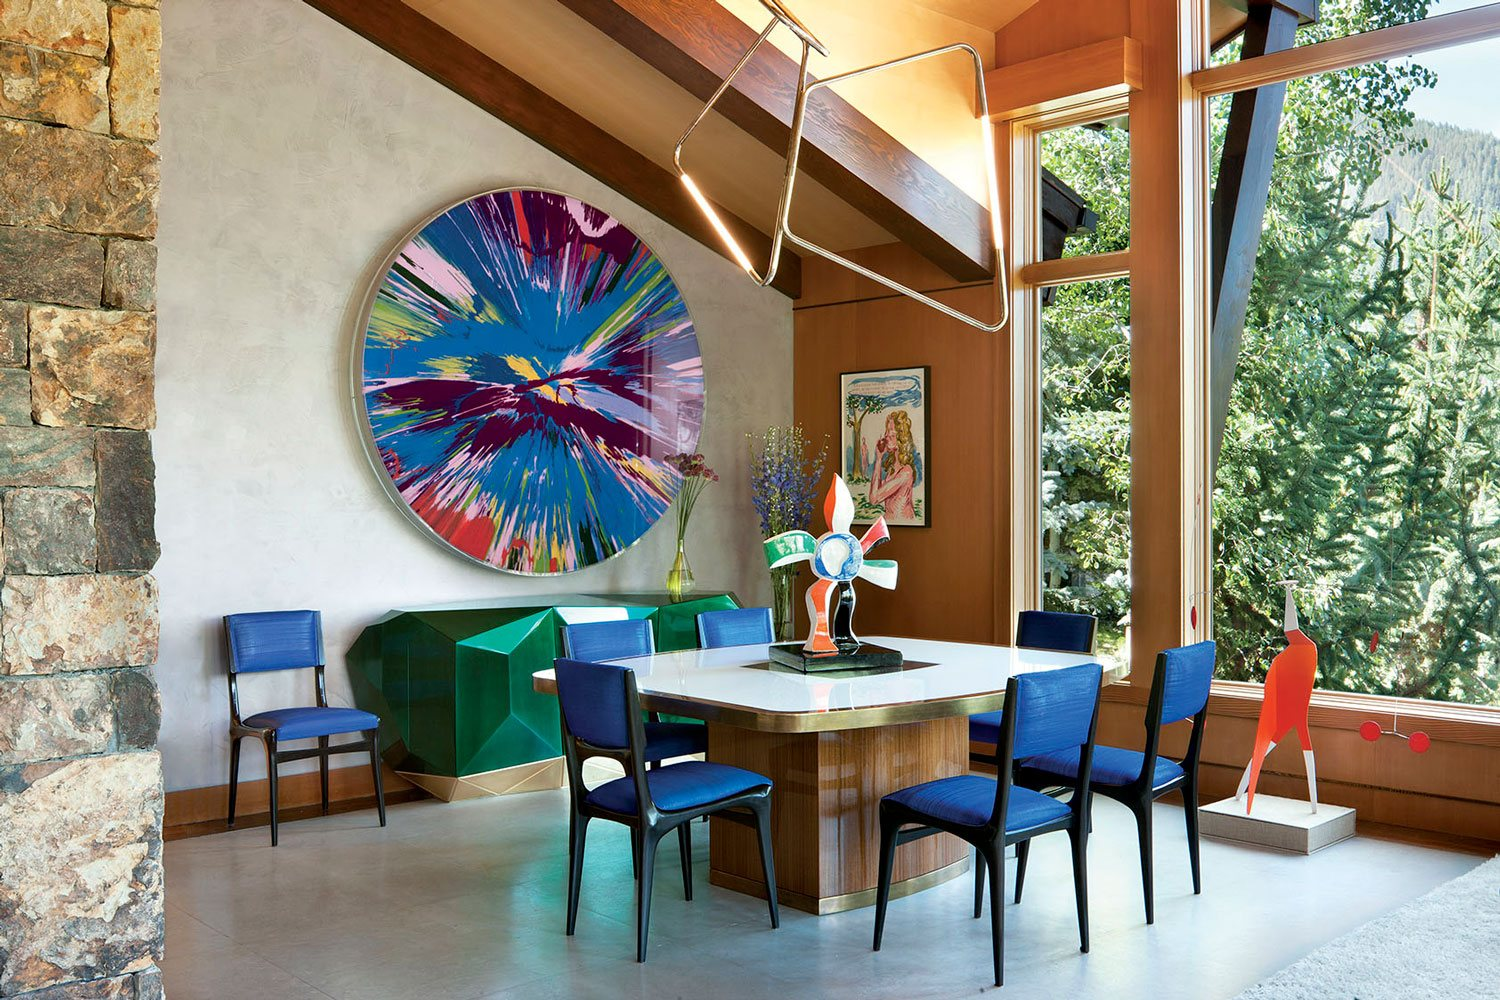 A Damien Hirst spin painting in the dining area of Sue Hostetler's Aspen home designed by Sara Story.